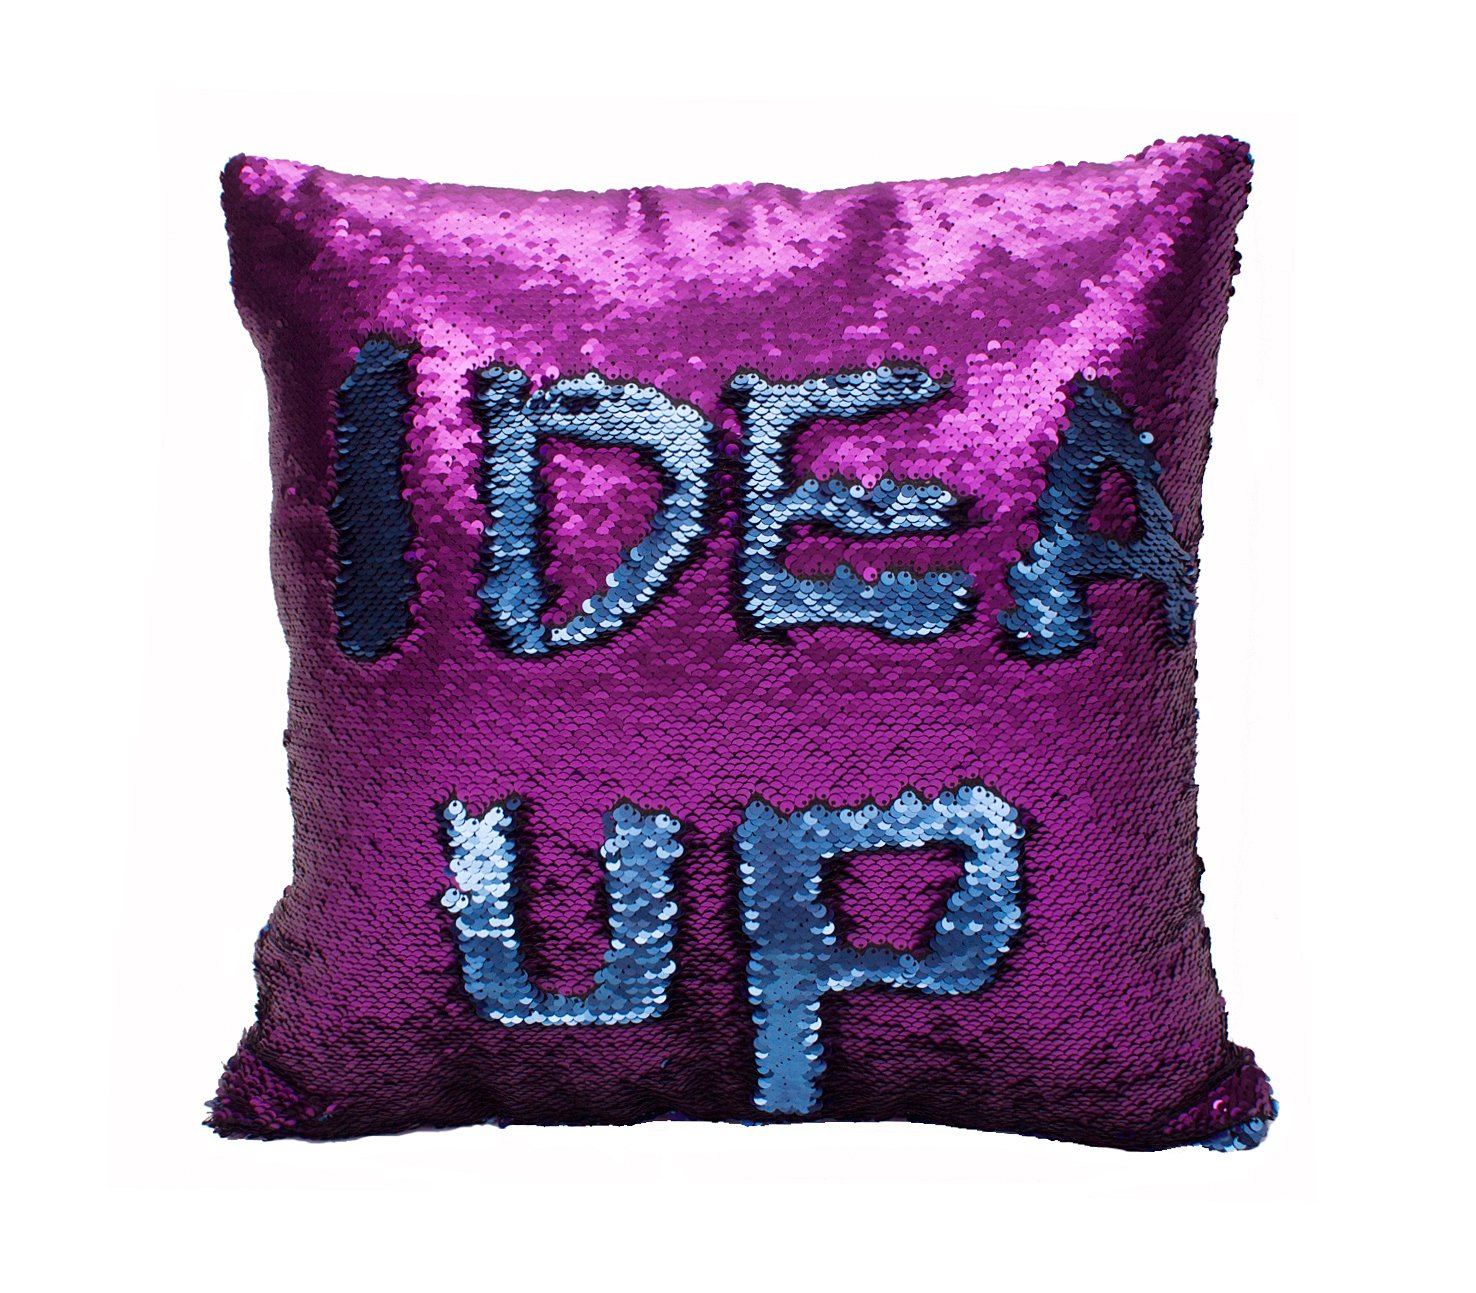 amazoncom idea up reversible sequins mermaid pillow cases cm  - amazoncom idea up reversible sequins mermaid pillow cases cm withmagic mermaid sequin (purple and blue) home  kitchen